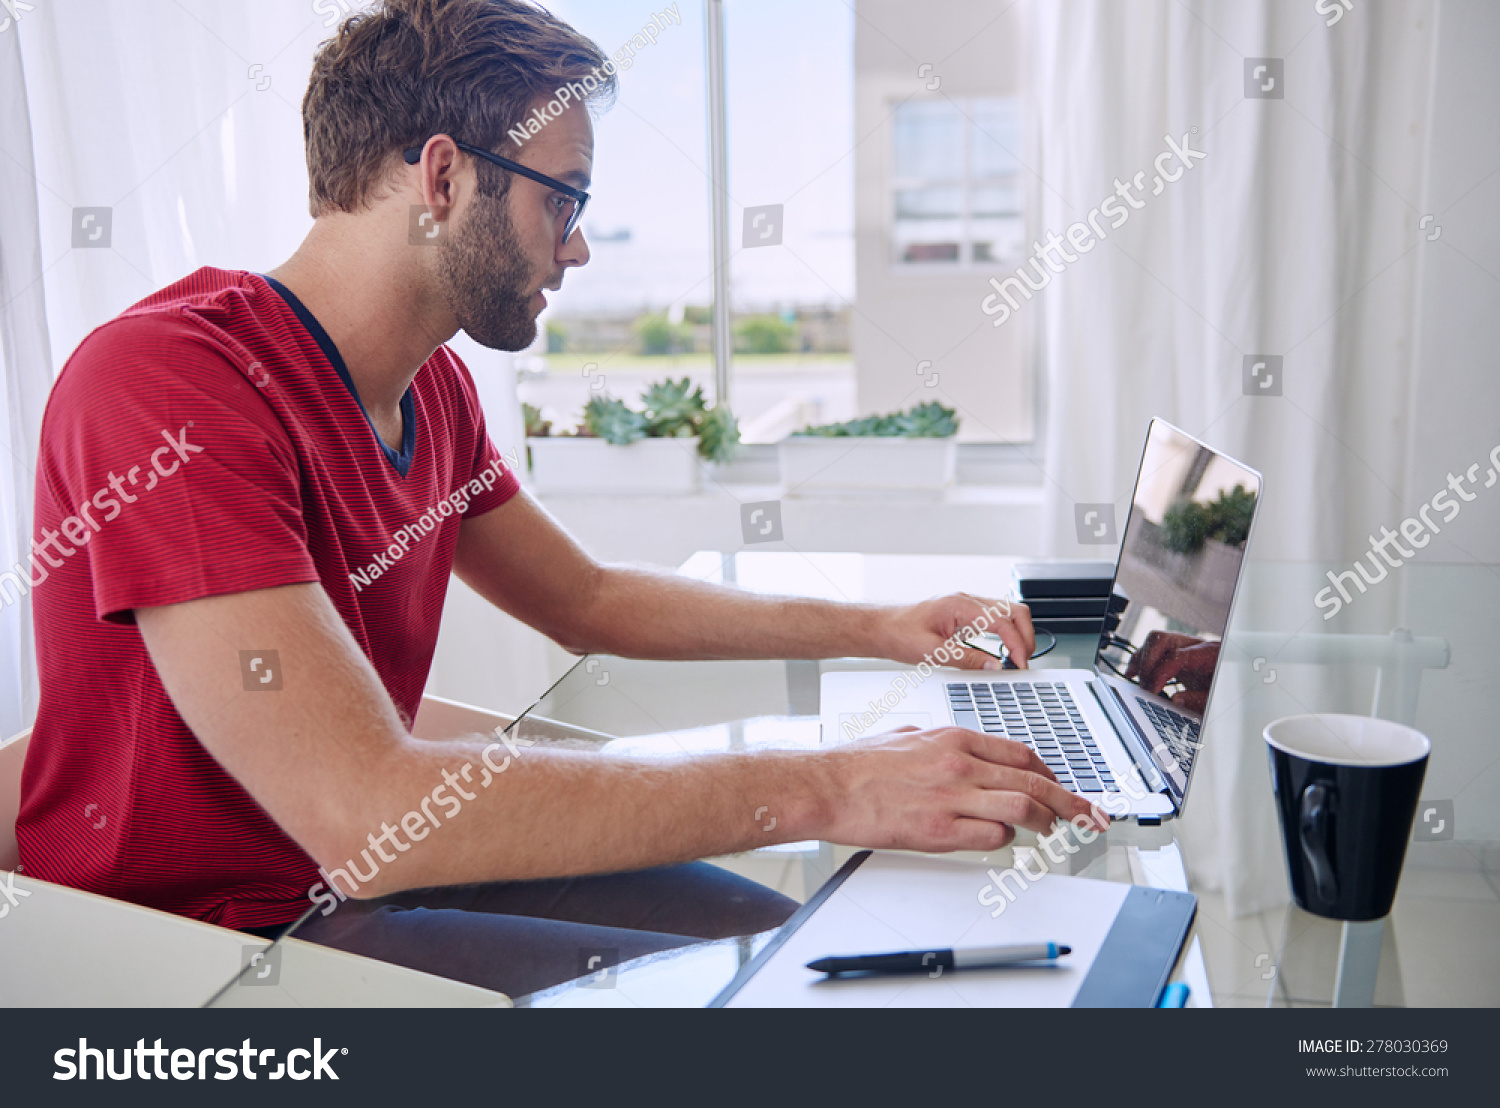 hight resolution of young professional busy working in his home office on his